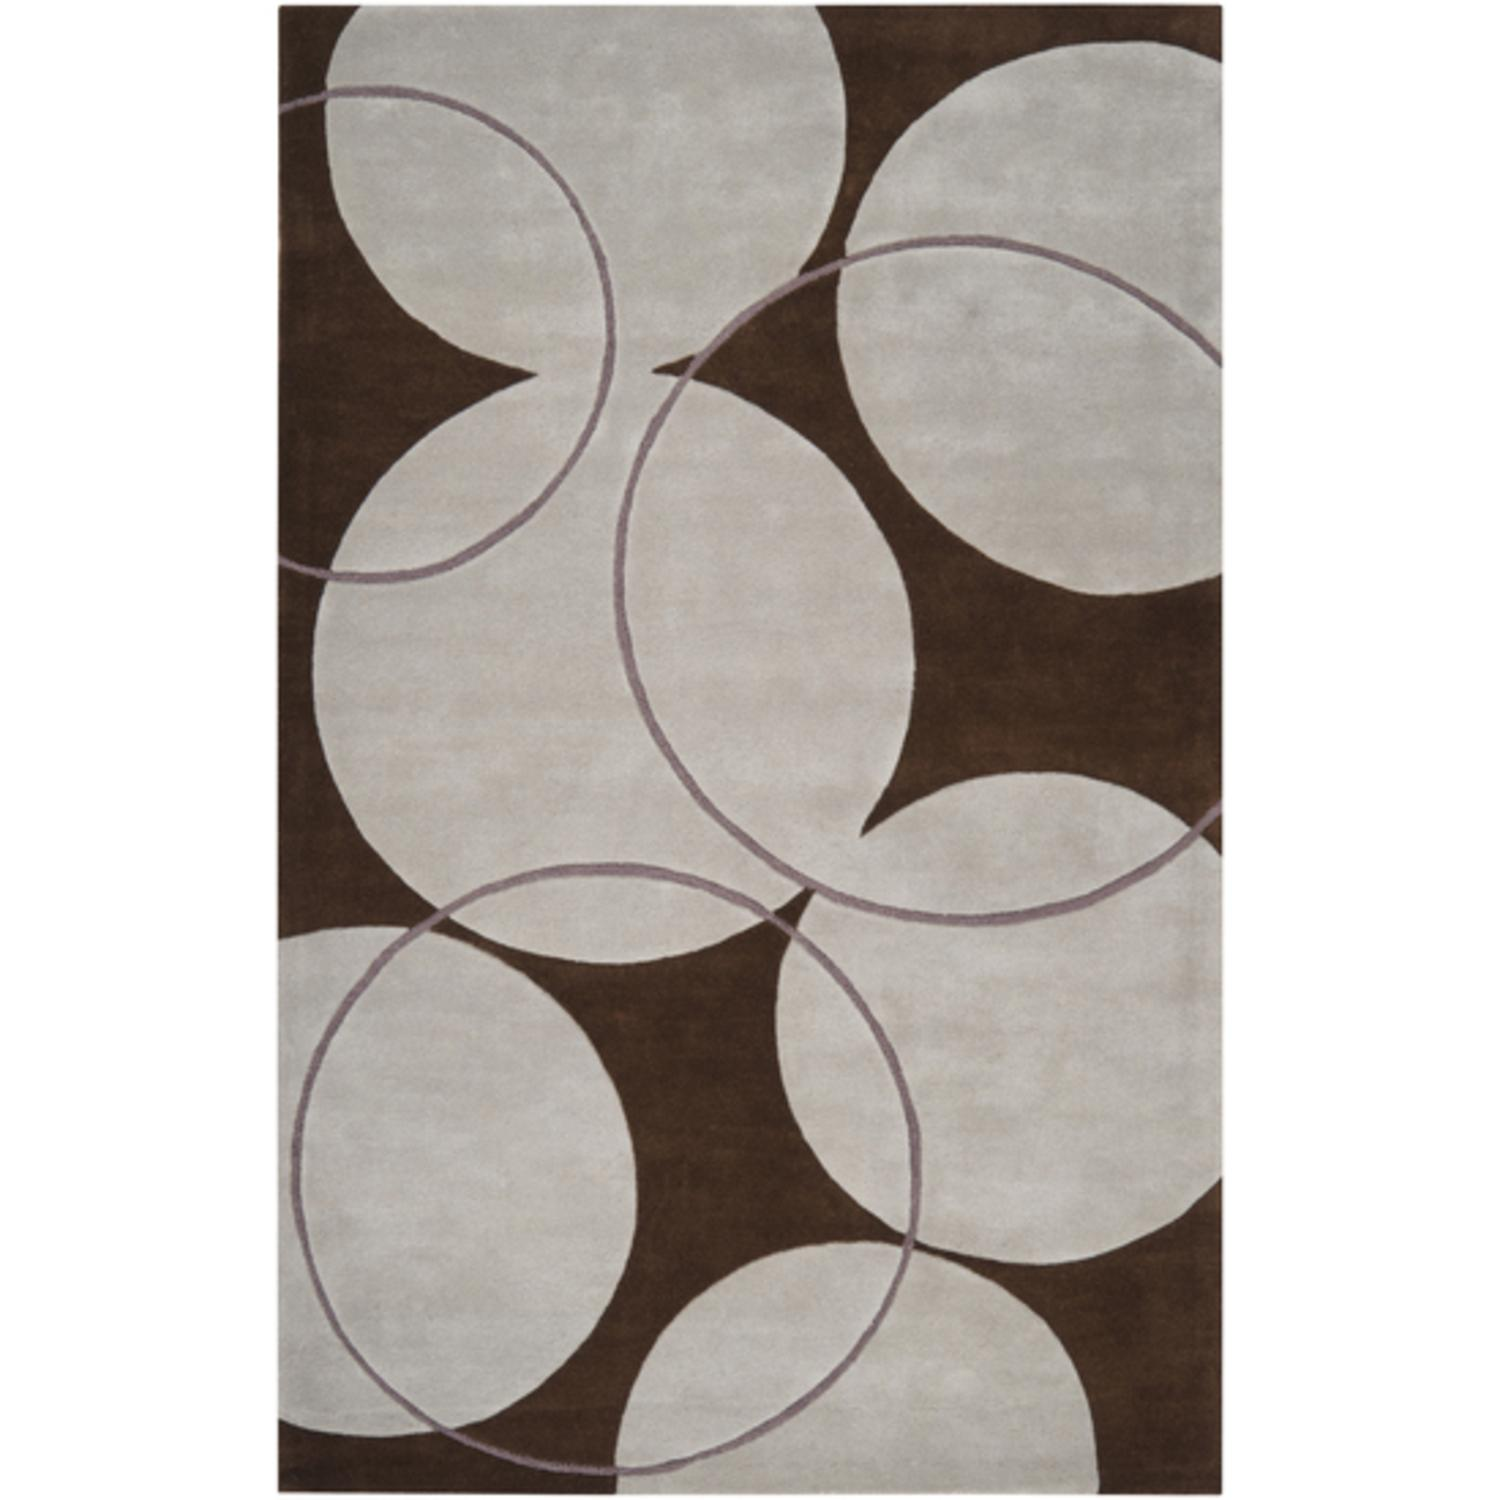 2' x 3' Bubble Spectacular Coffee Bean Brown and Bone Wool Area Throw Rug